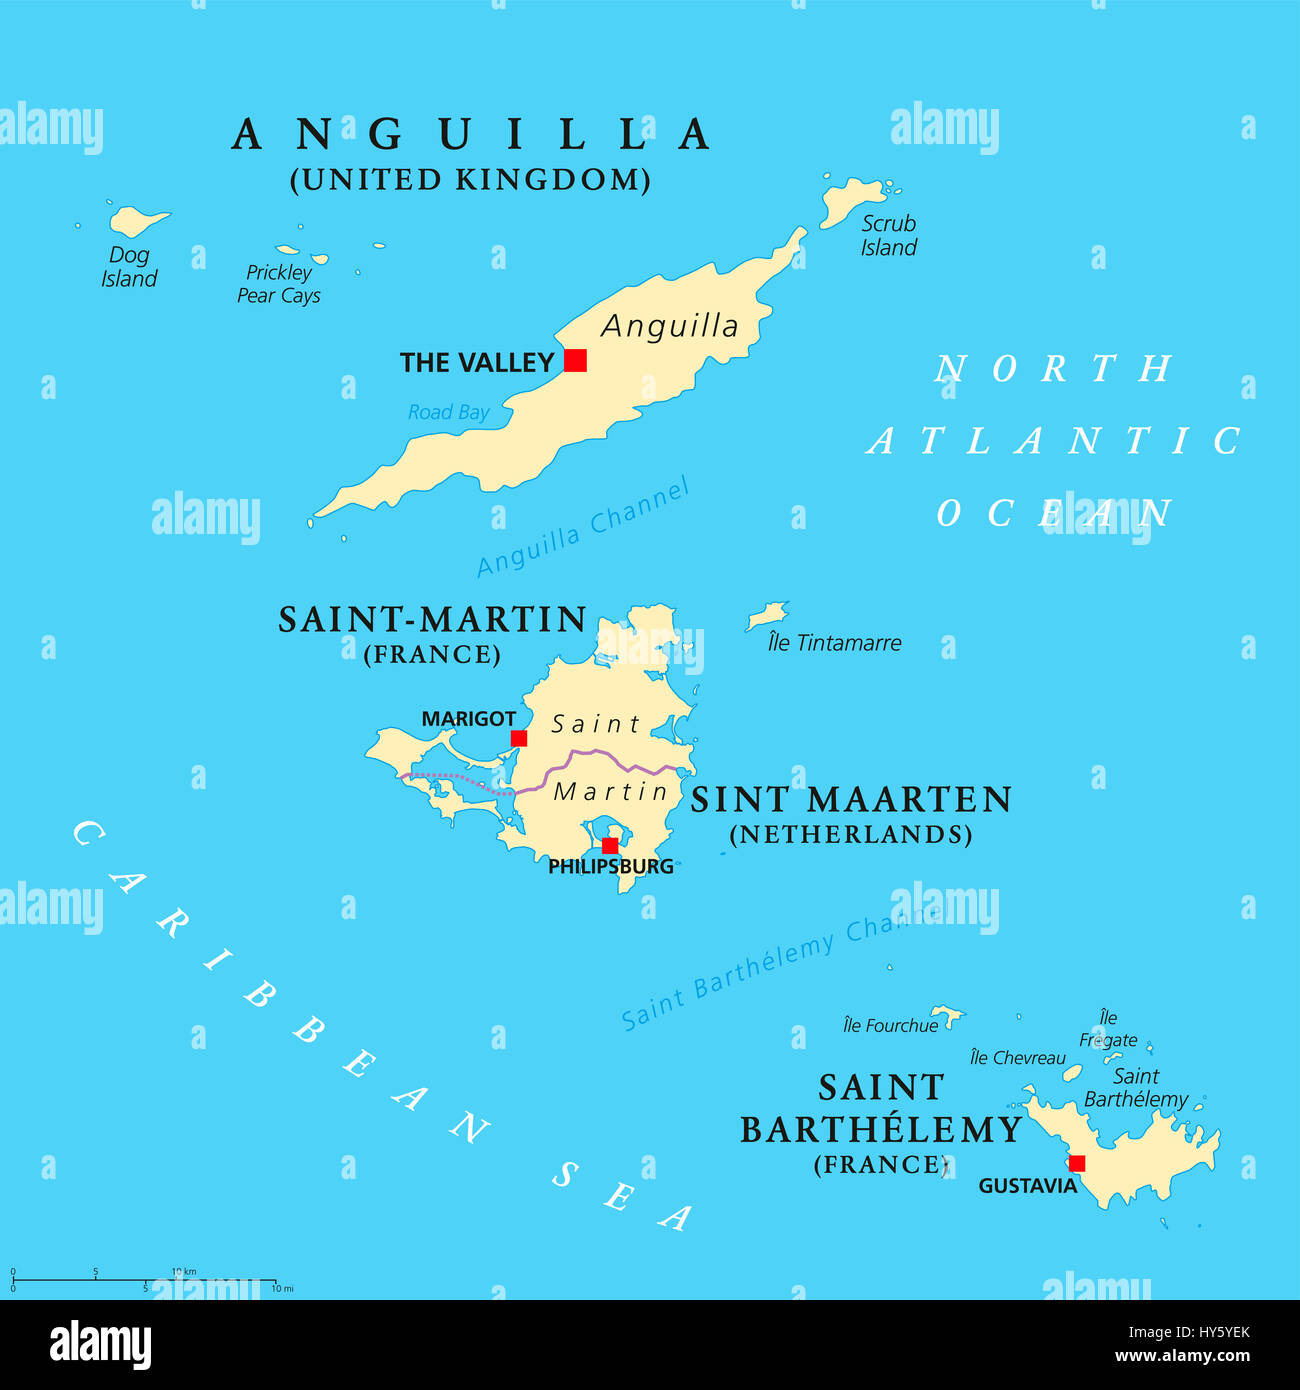 st barts island map with Stock Photo Anguilla Saint Martin Sint Maarten And Saint Barthelemy Political 137199627 on Eden Rock St Barths The Caribbean 27602 likewise Vc moreover Traveling In Mainland France But furthermore VisitPoint additionally VisitPoint.